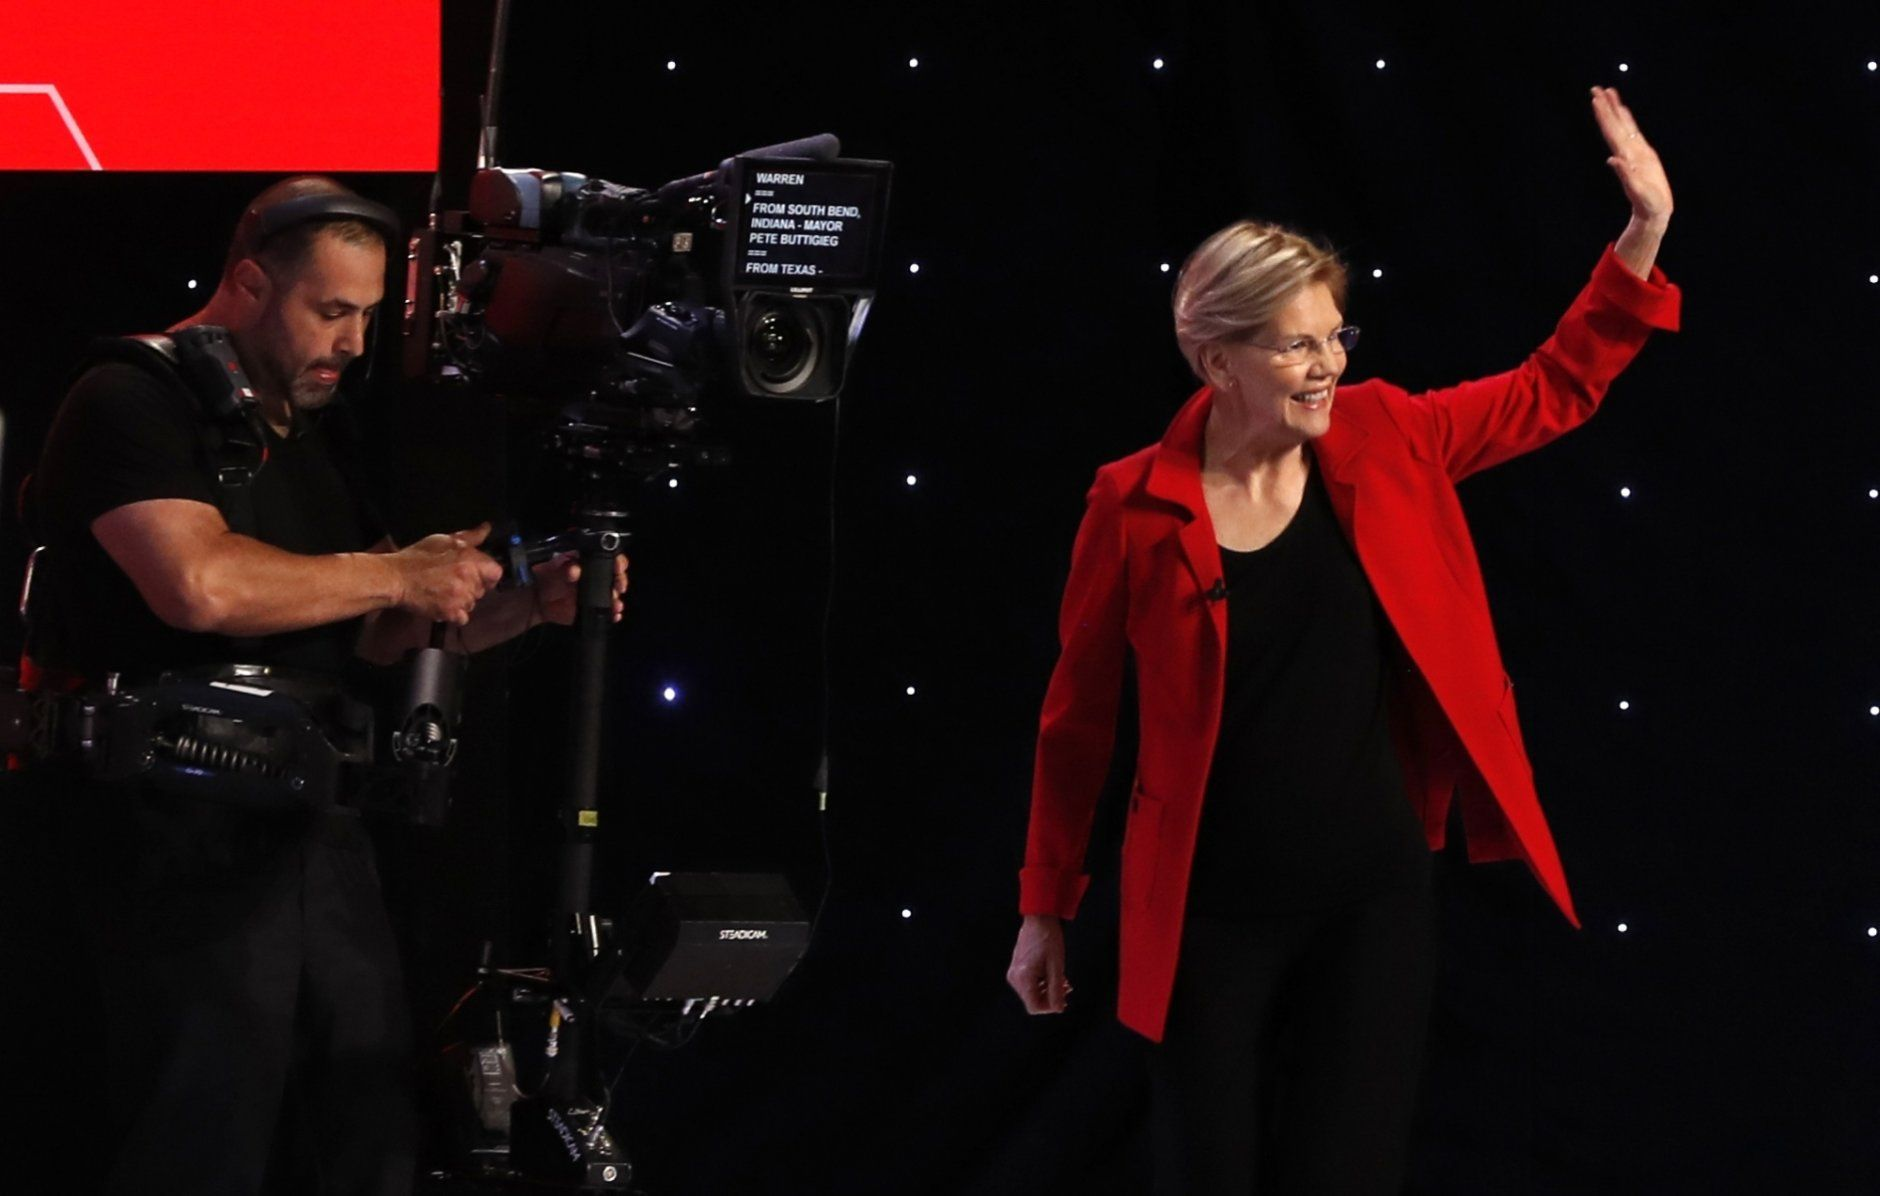 Sen. Elizabeth Warren, D-Mass. takes the stage before the first of two Democratic presidential primary debates hosted by CNN Tuesday, July 30, 2019, in the Fox Theatre in Detroit. (AP Photo/Carlos Osorio)